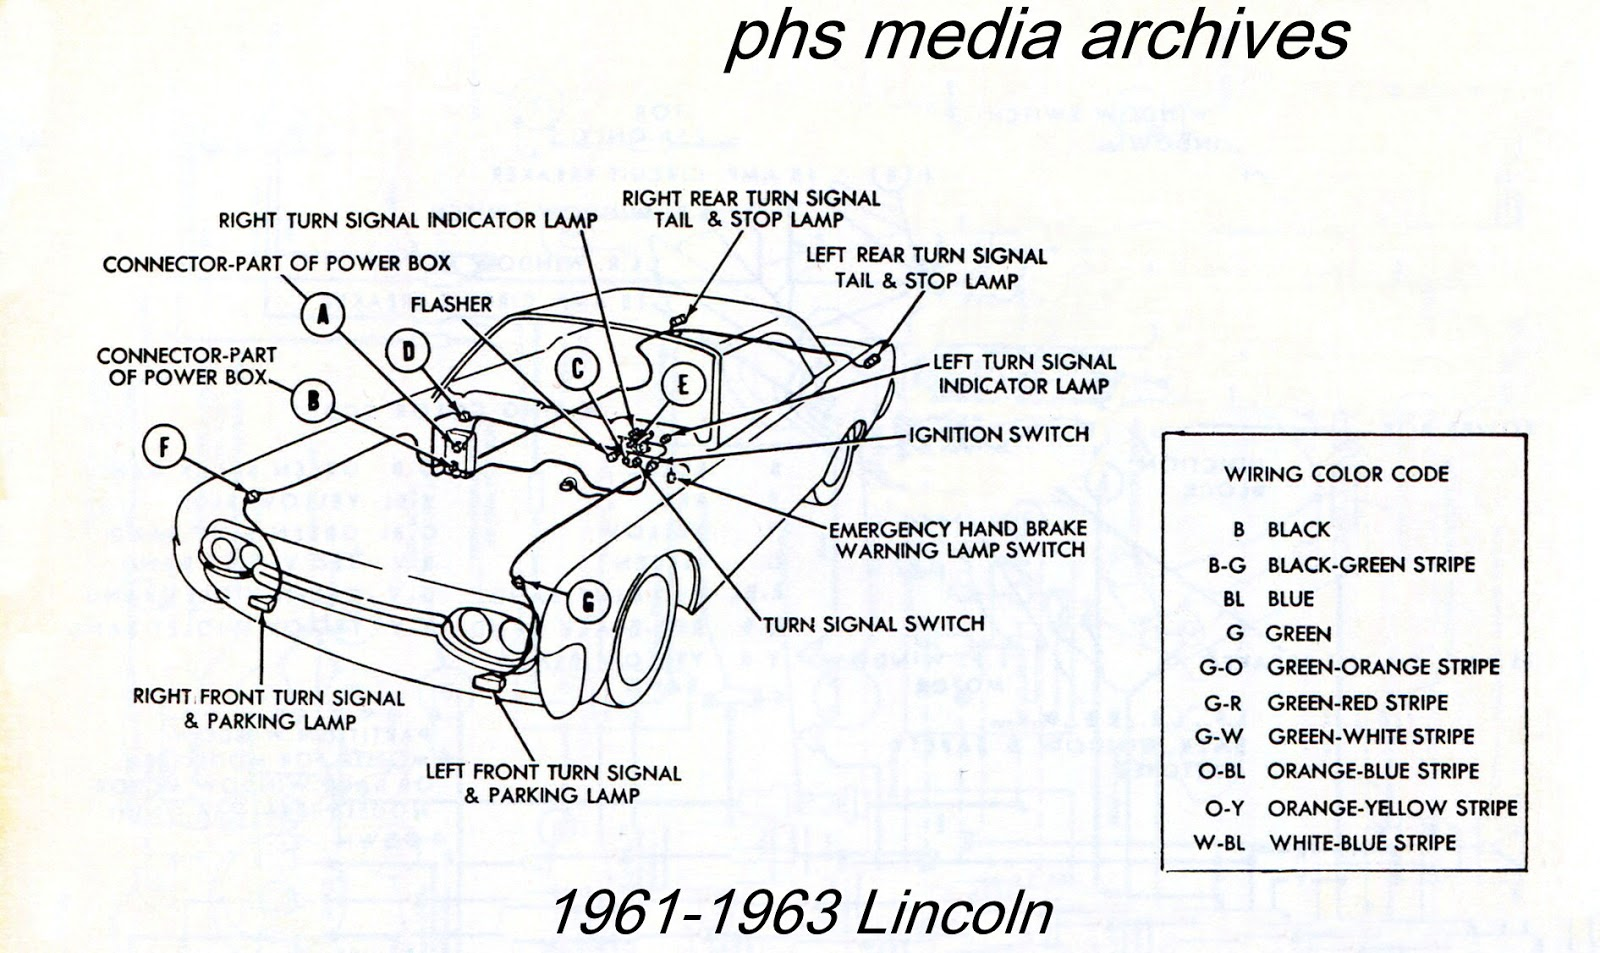 linc%2B%2Bc239 tech series 1960 1964 lincoln wiring diagrams phscollectorcarworld Simple Electrical Wiring Diagrams at fashall.co